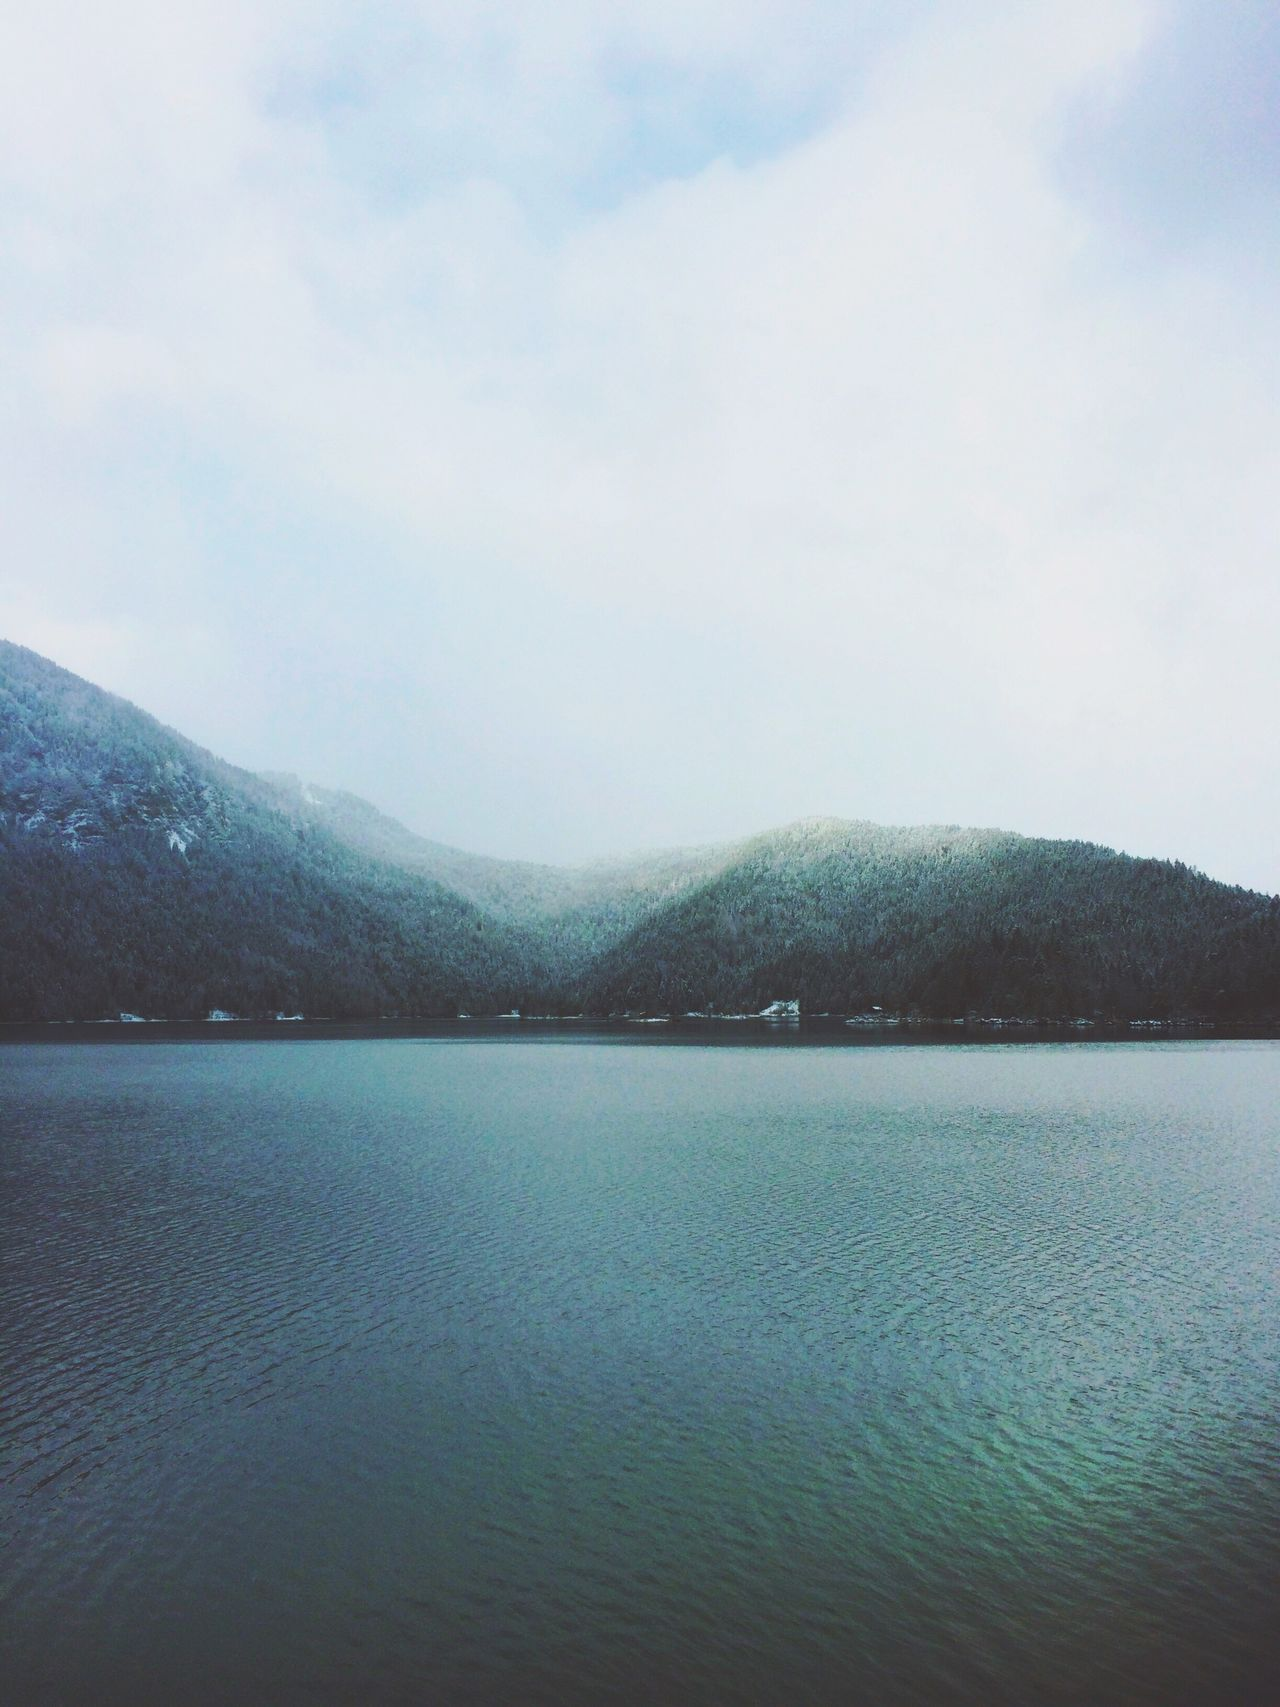 A glimpse of light on a grey day. The Week Of Eyeem Naturelovers Lake View Eye4photography  Alpen Showcase: December IPhoneography Lake EyeEm Nature Lover Shades Of Grey EyeEm Best Shots Mountains And Sky Cold Alps